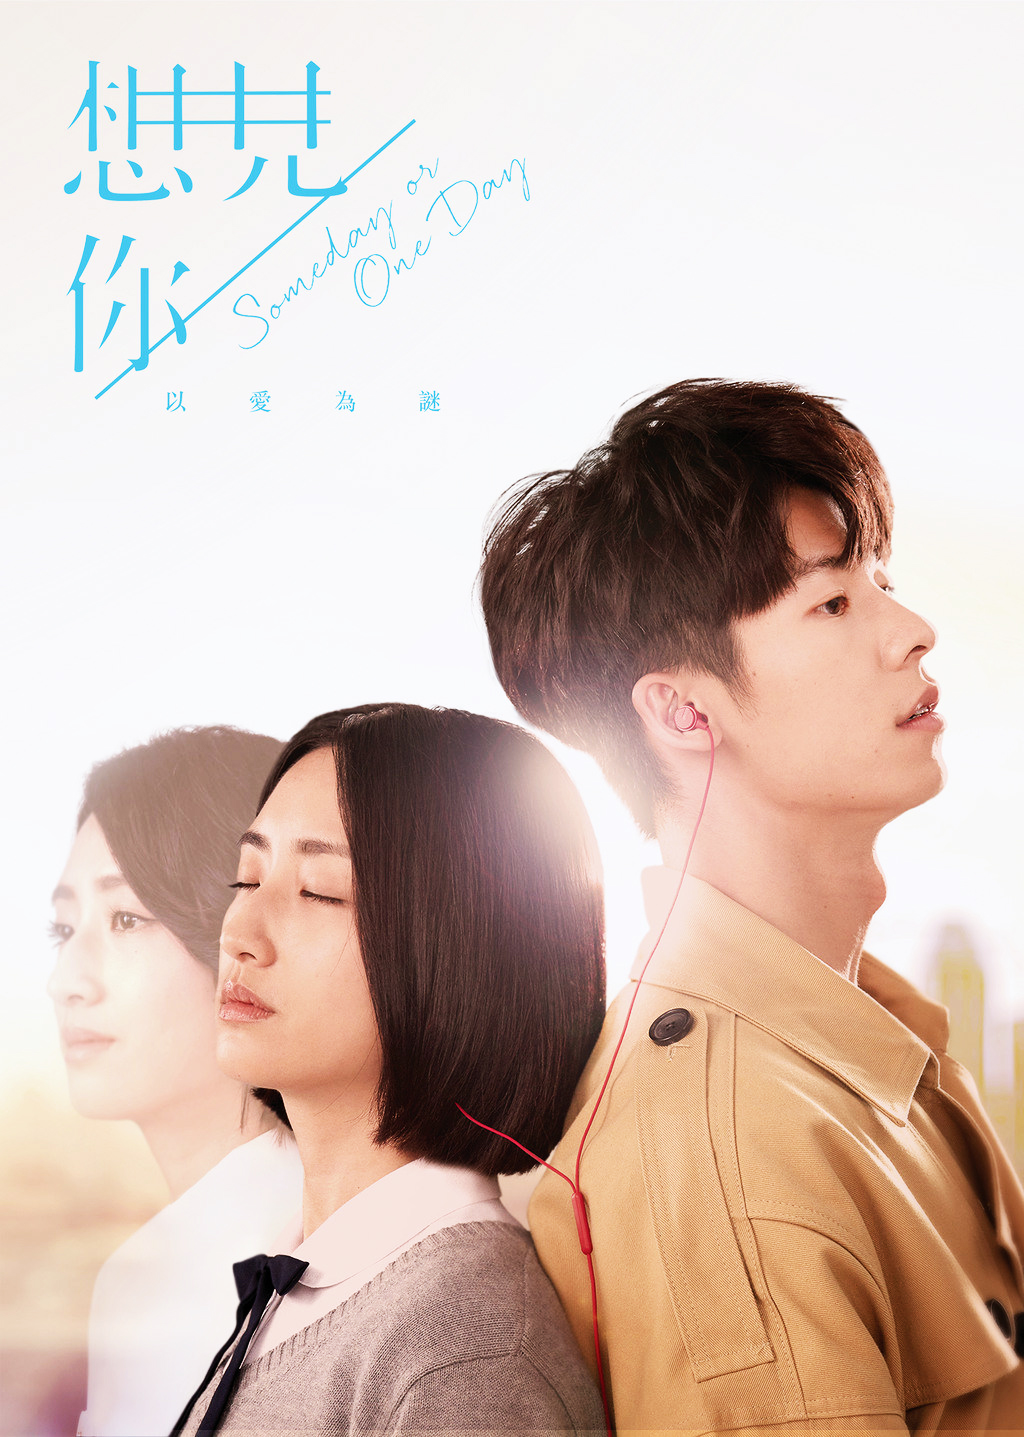 bộ phim Hoa ngữ Muốn Gặp Anh (Some Day or One Day)